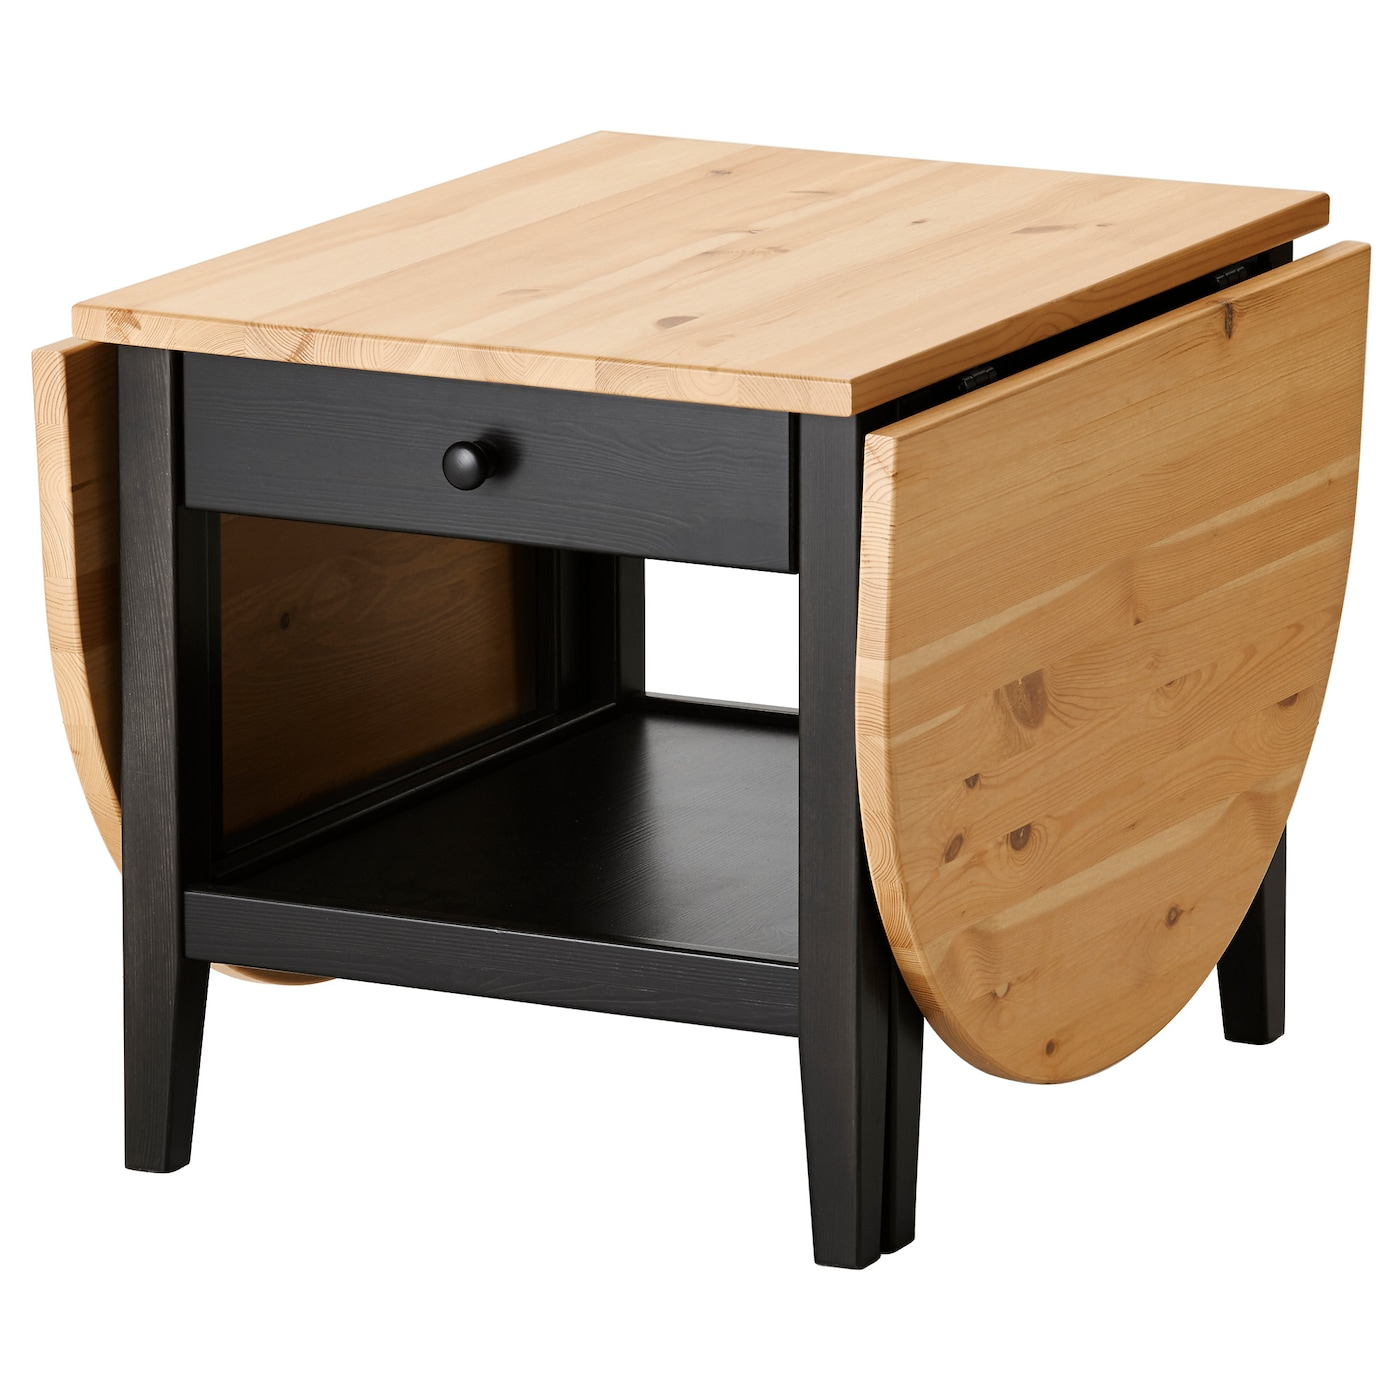 Arkelstorp coffee table black 140 cm ikea - Petite table de salon ikea ...